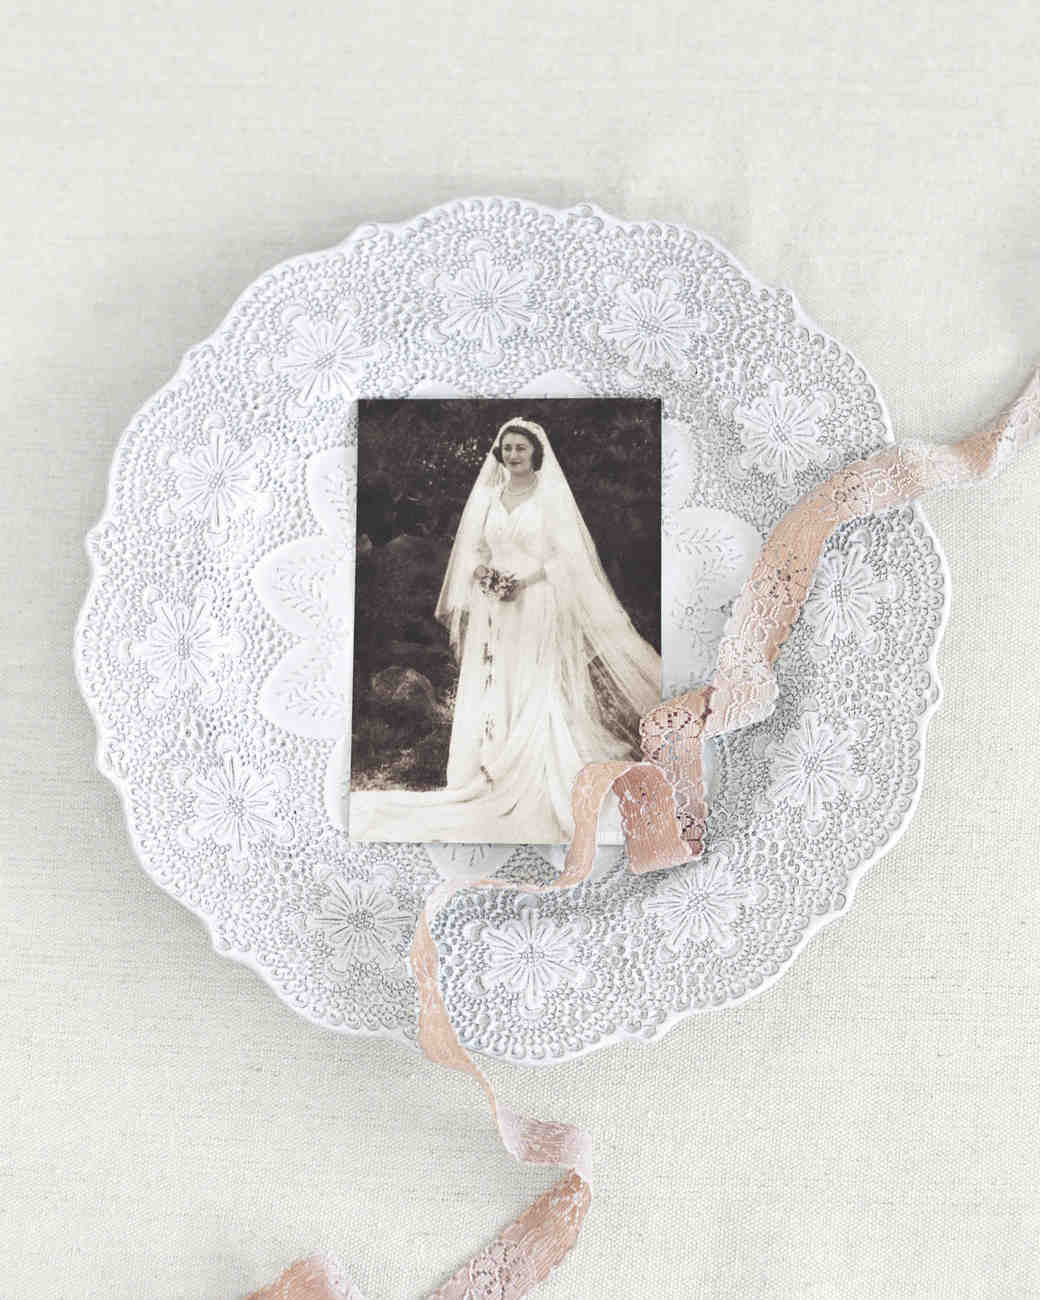 Photograph of Grandmother as Bride